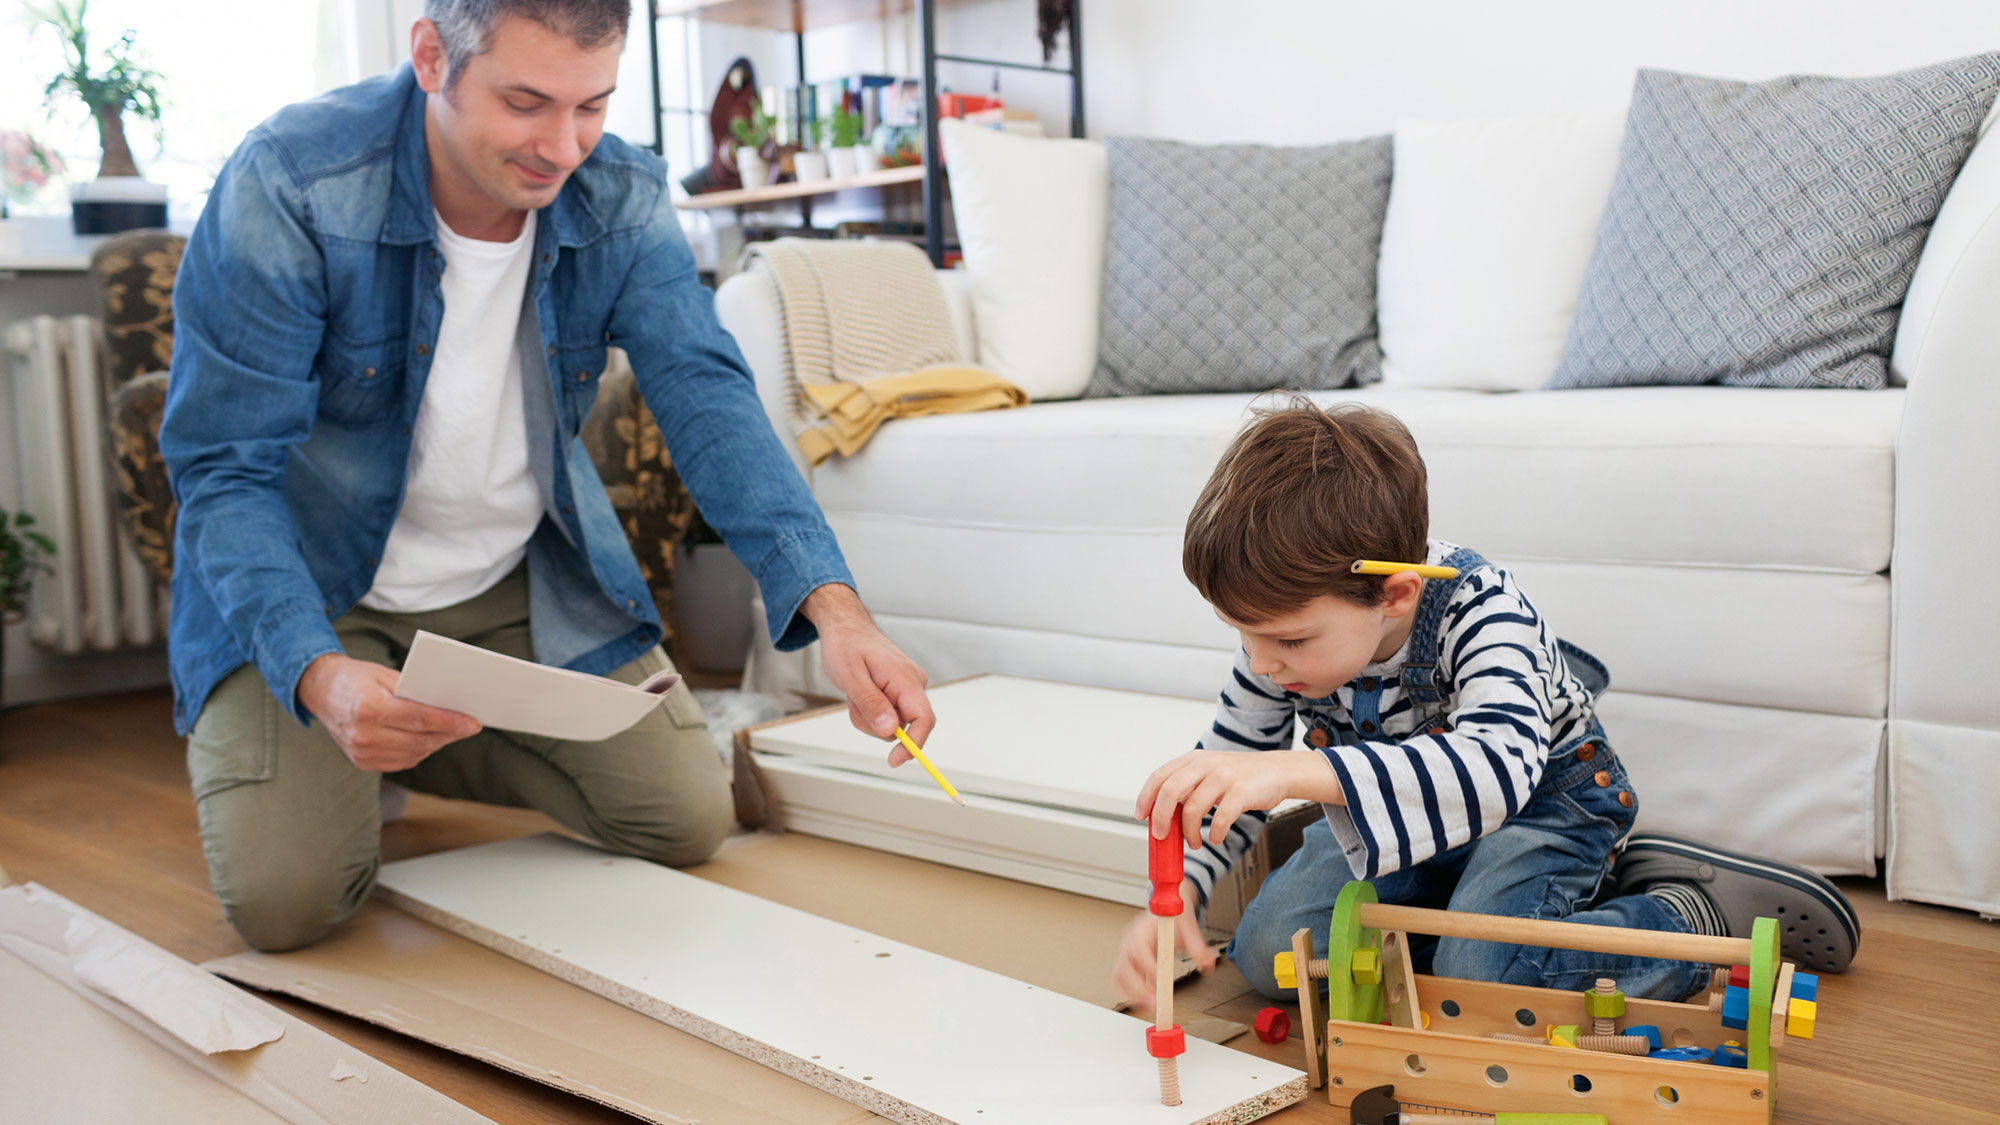 What Do Parents Think About a Career in Construction?